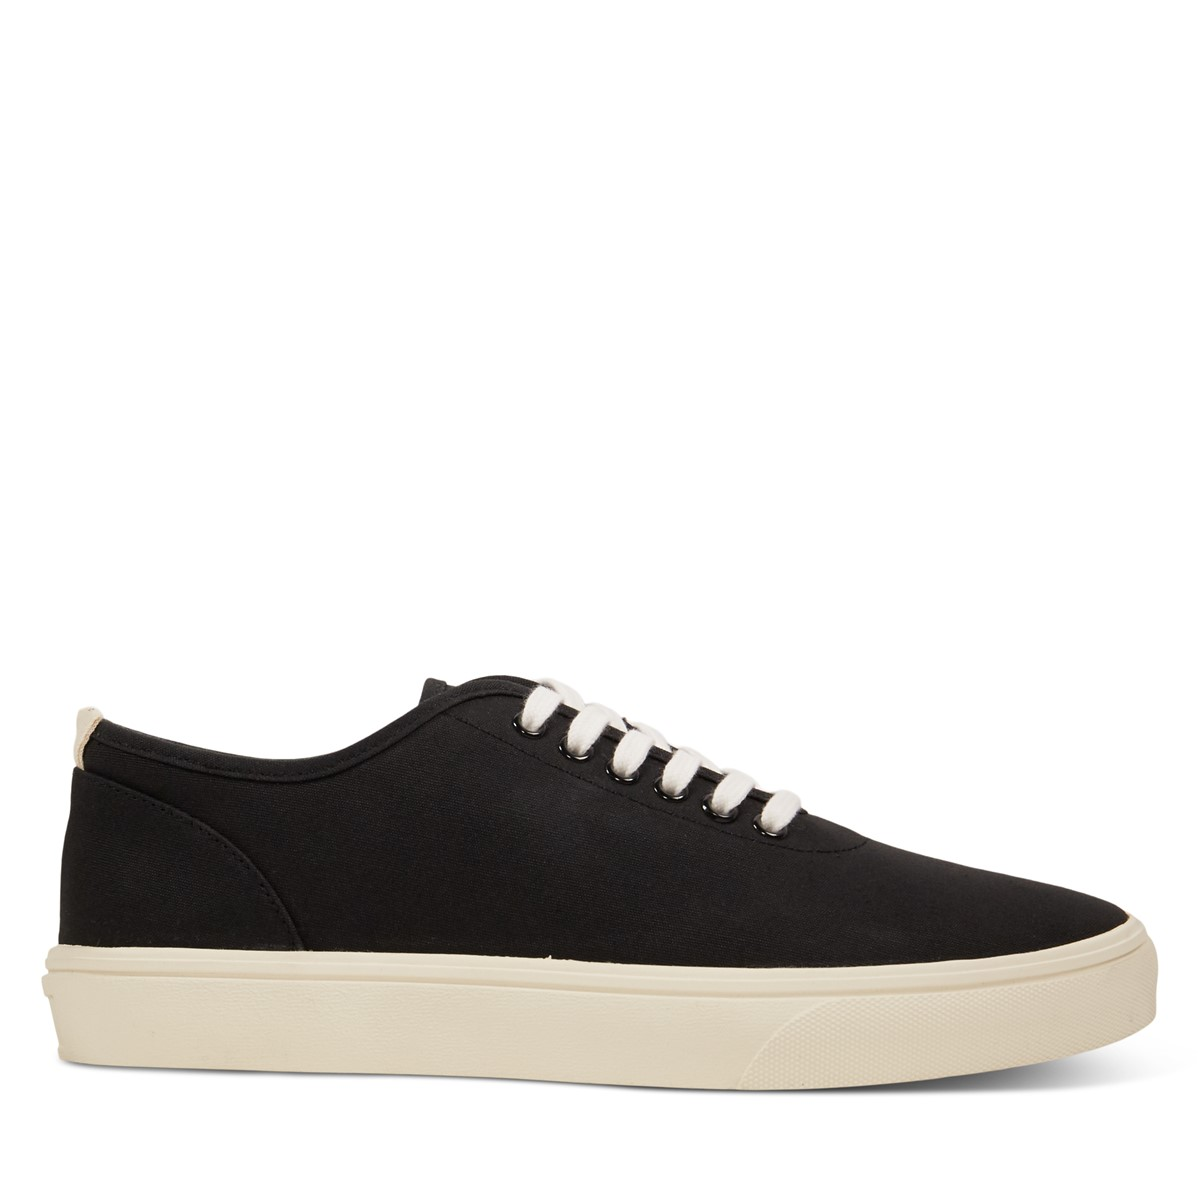 Women's Lennox Lace-Up Shoes in Black